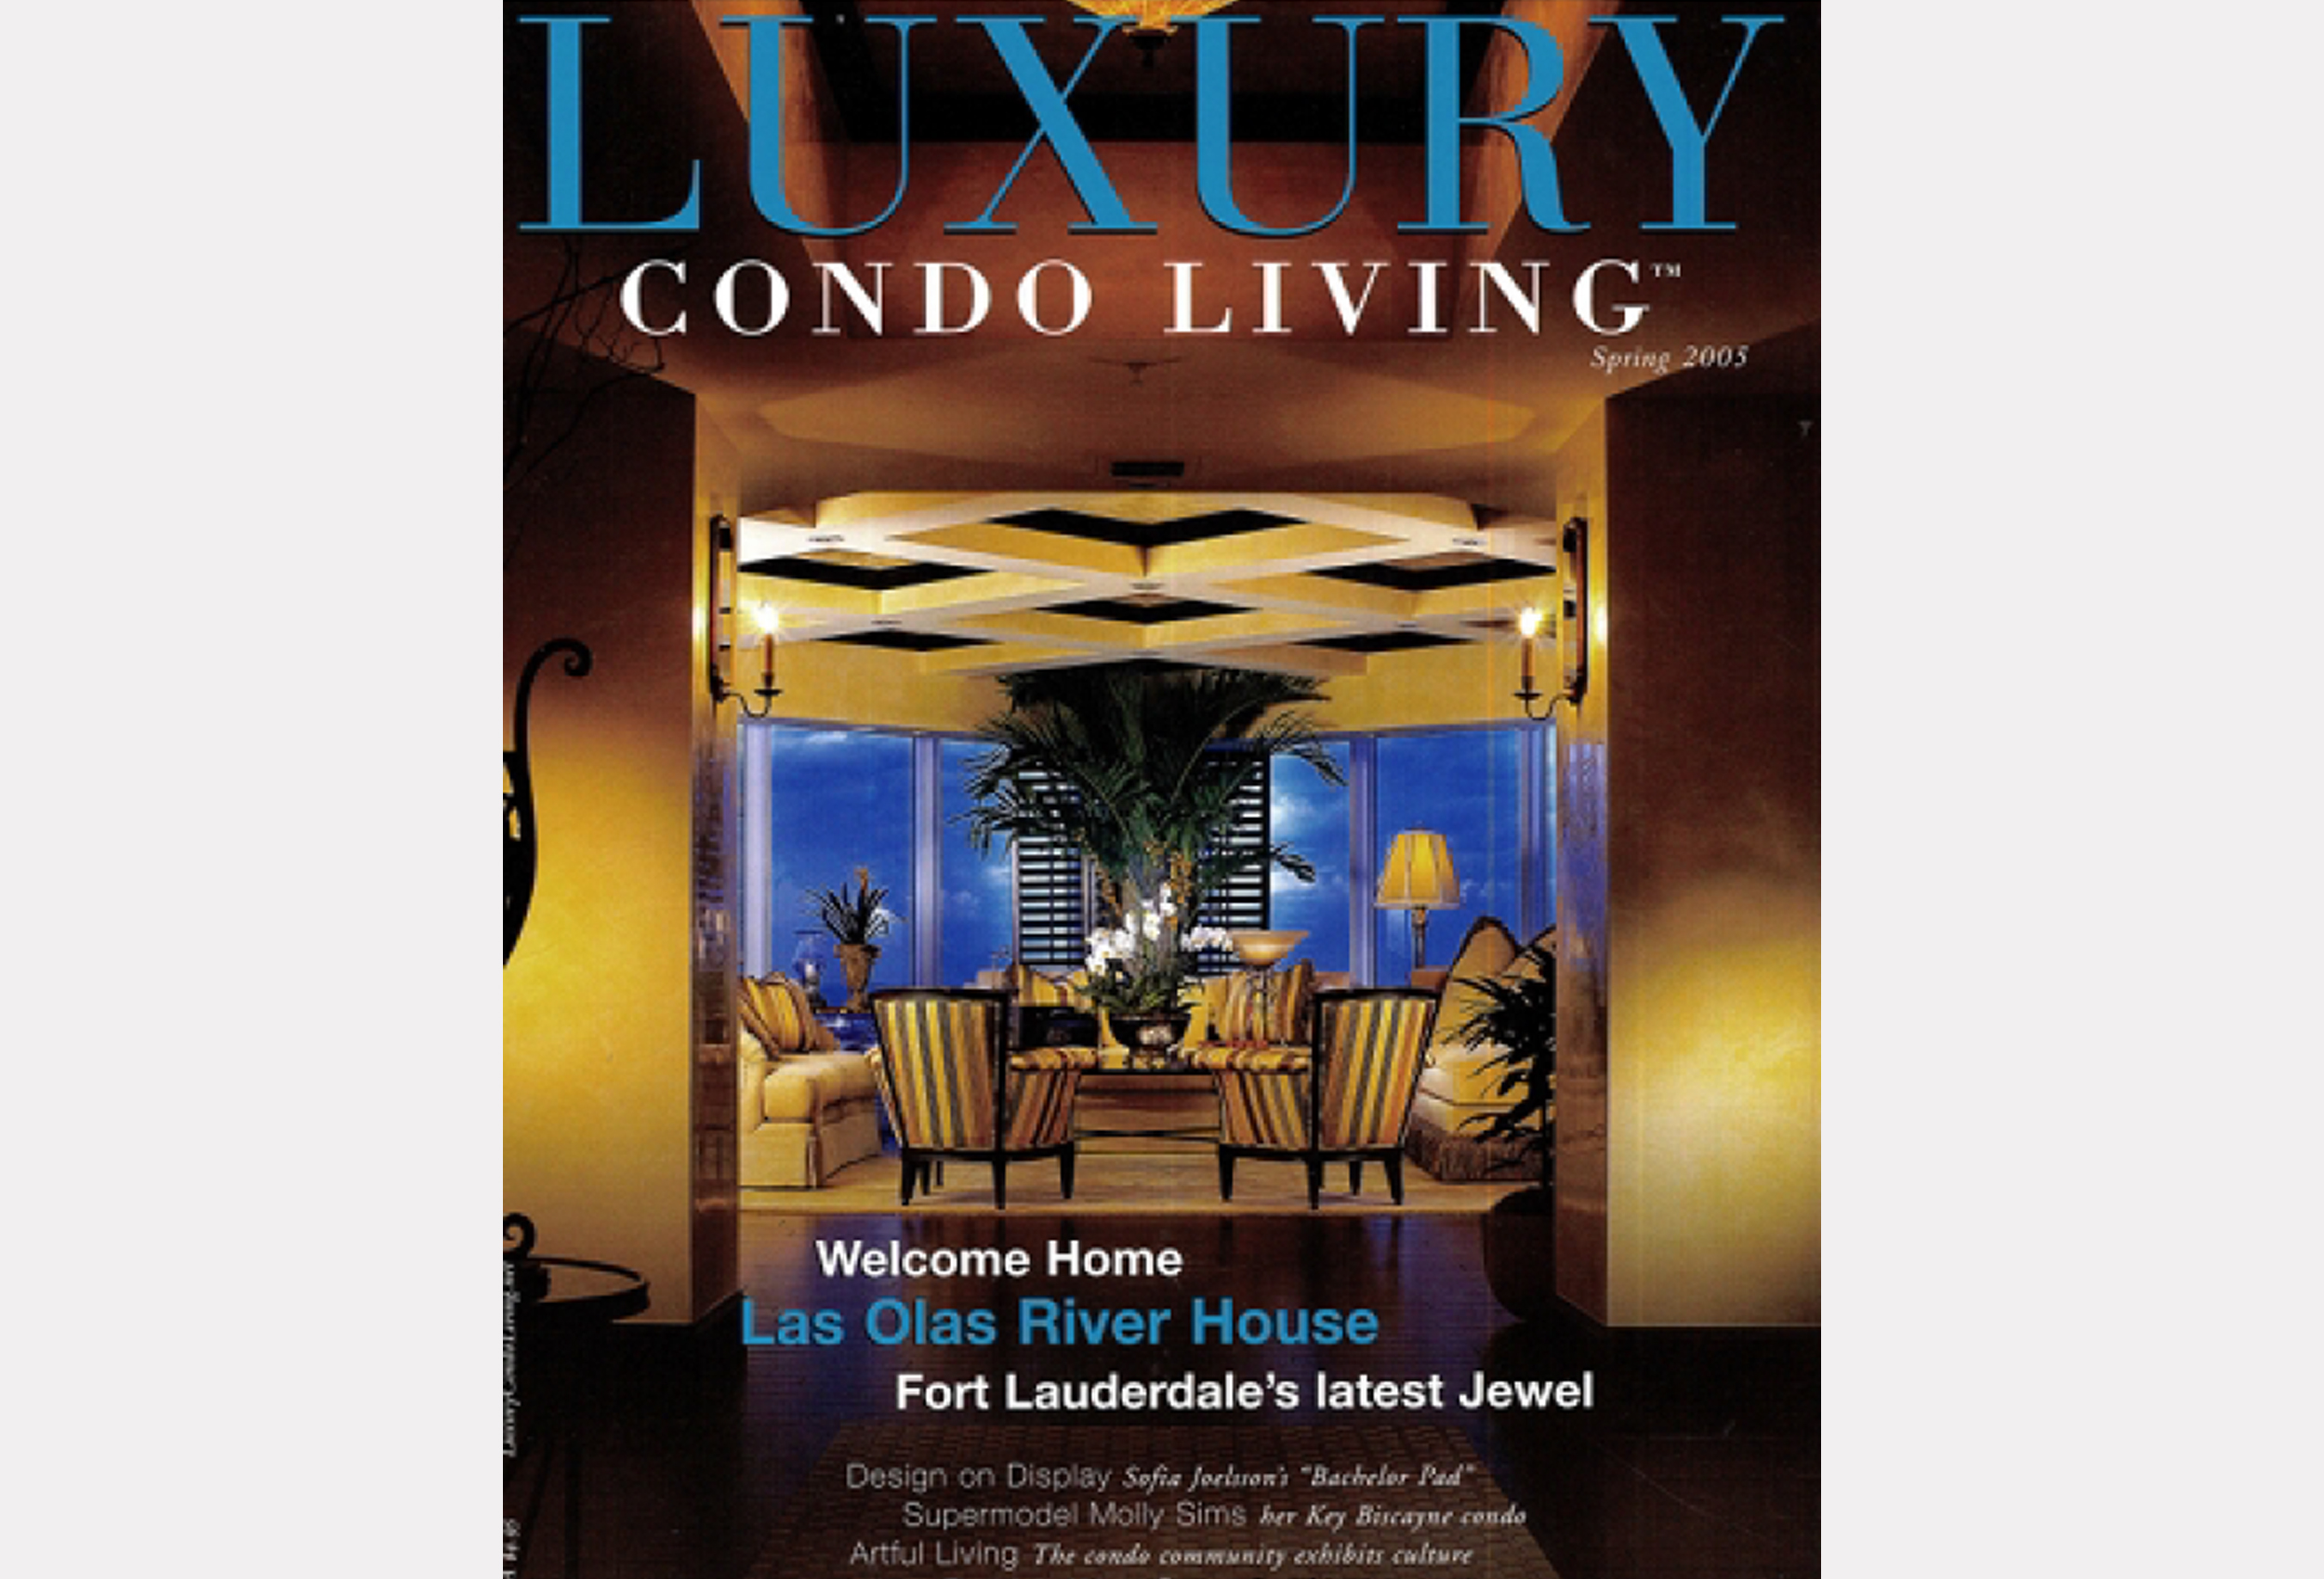 Luxury Condo Living 2005